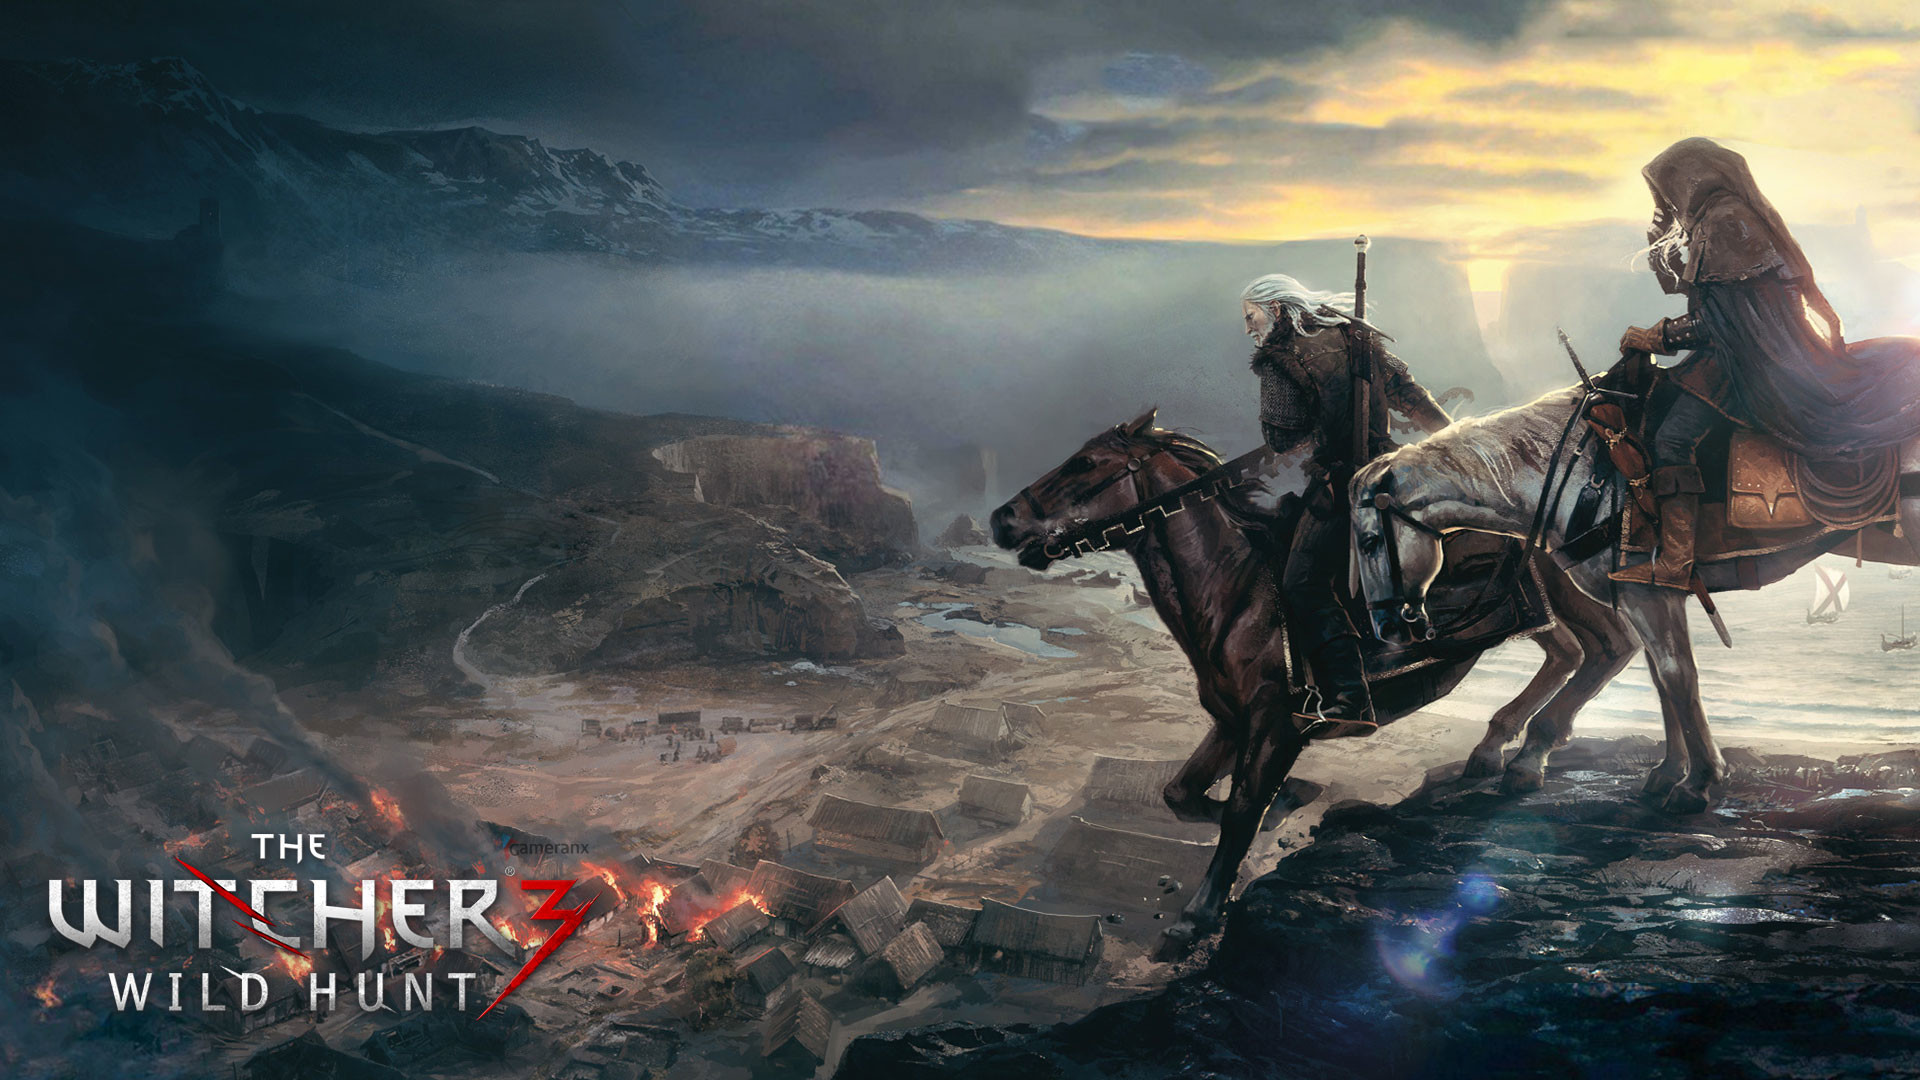 The Witcher 3: Wild Hunt Wallpapers | HD Wallpapers | Page 2